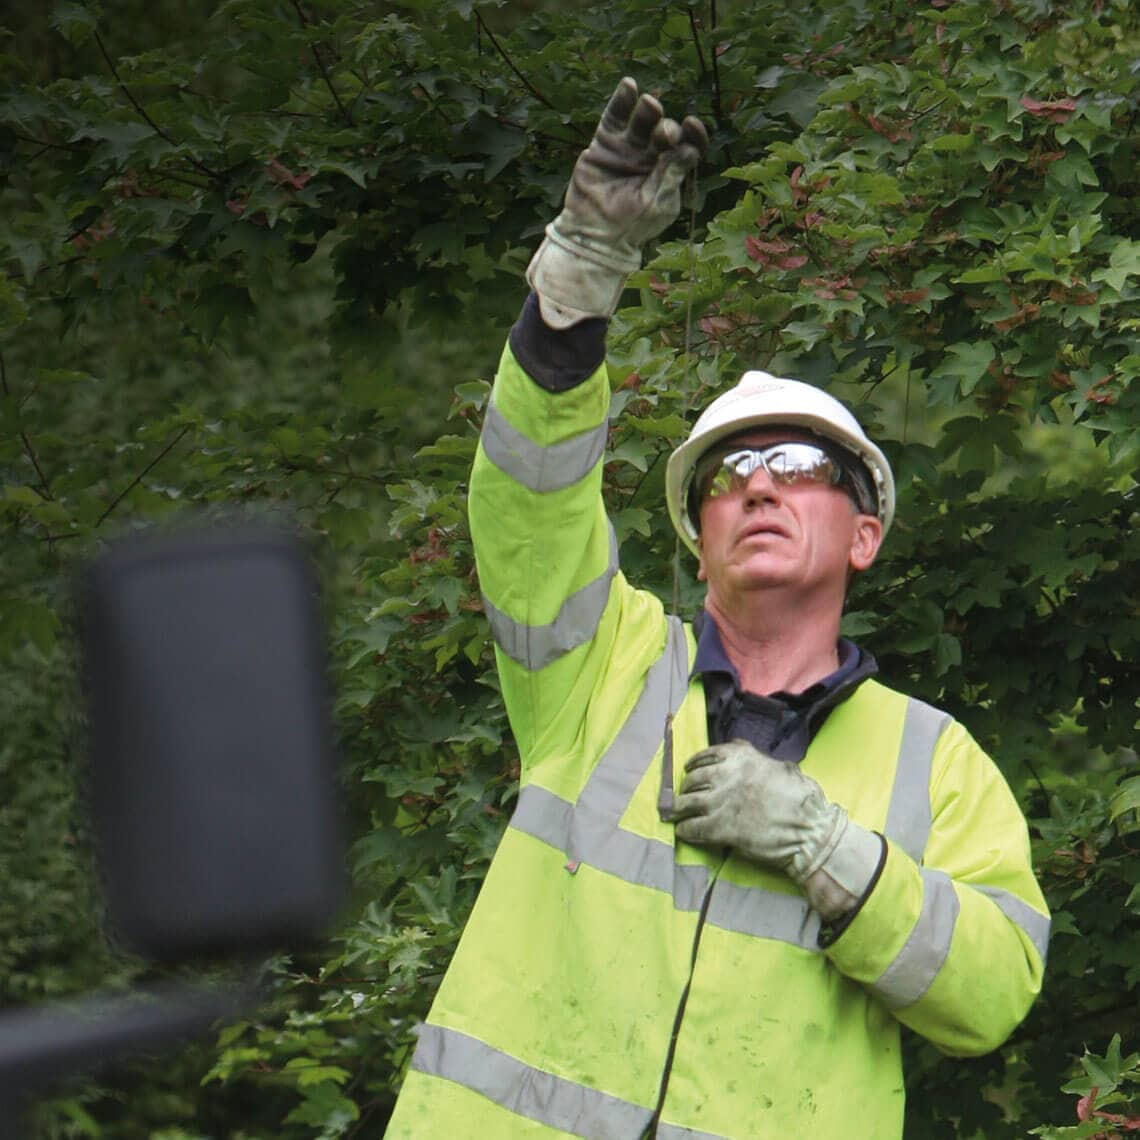 Power to the people - UK Power Networks